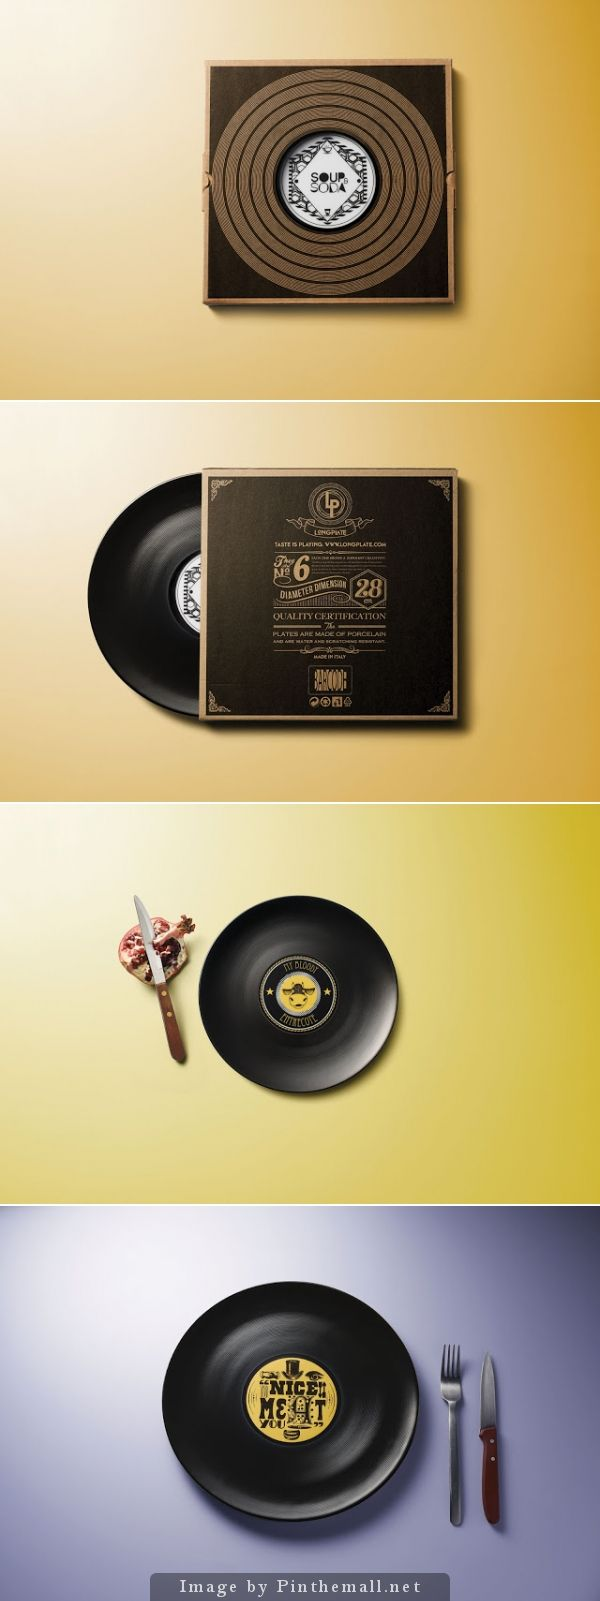 "Longplate, ""It wouldn't be so bad eating on a long #plate record"" - http://www.packagingoftheworld.com/2014/09/longplate.html"